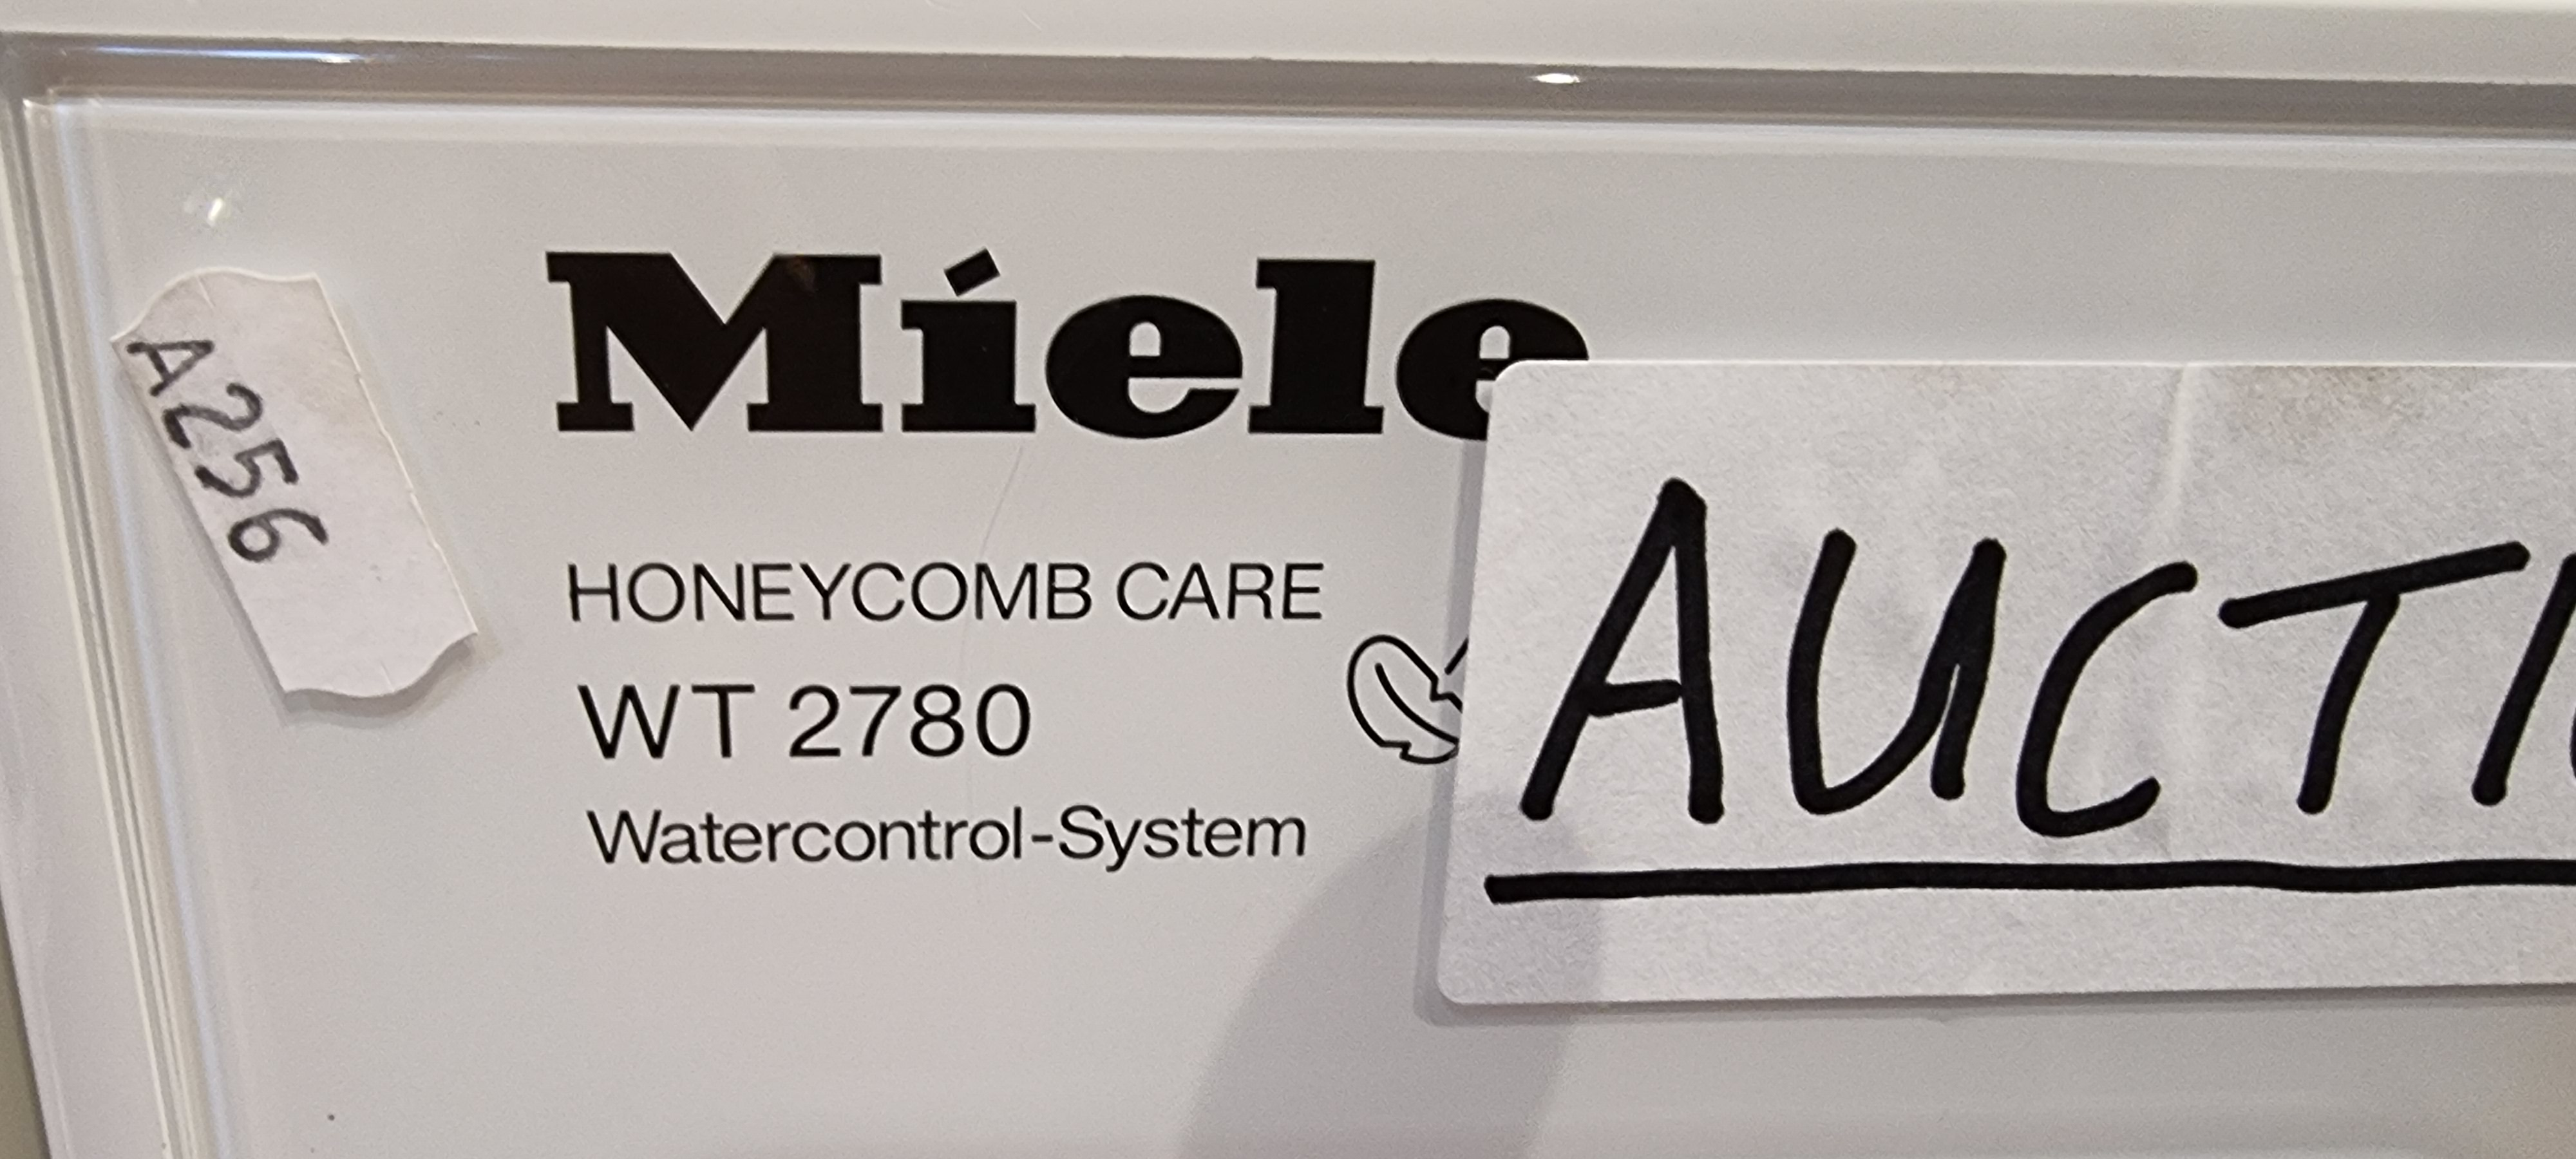 A Miele washing machine, model number WT 2780. - Image 2 of 2